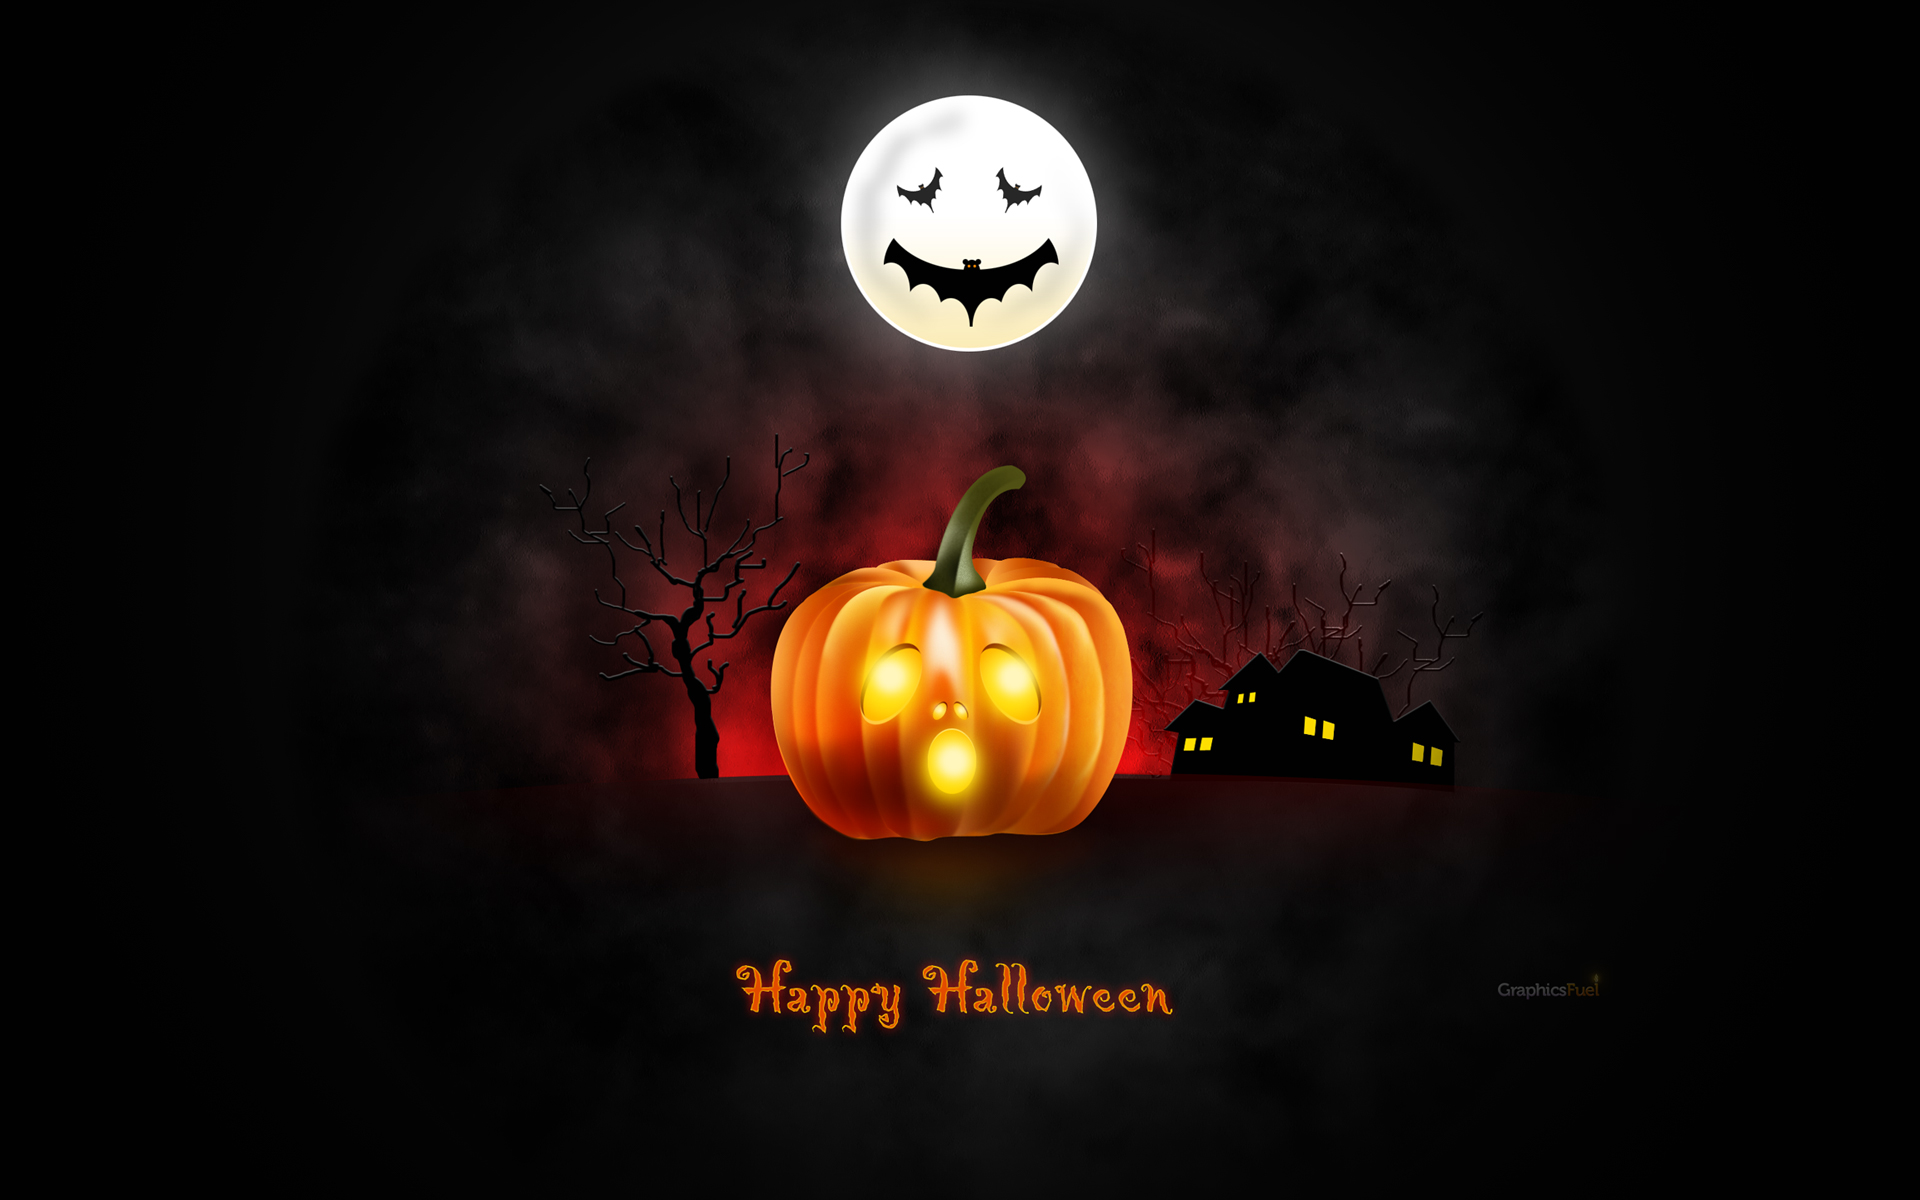 Halloween wallpaper for desktop iPad amp iPhone PSD 1920x1200